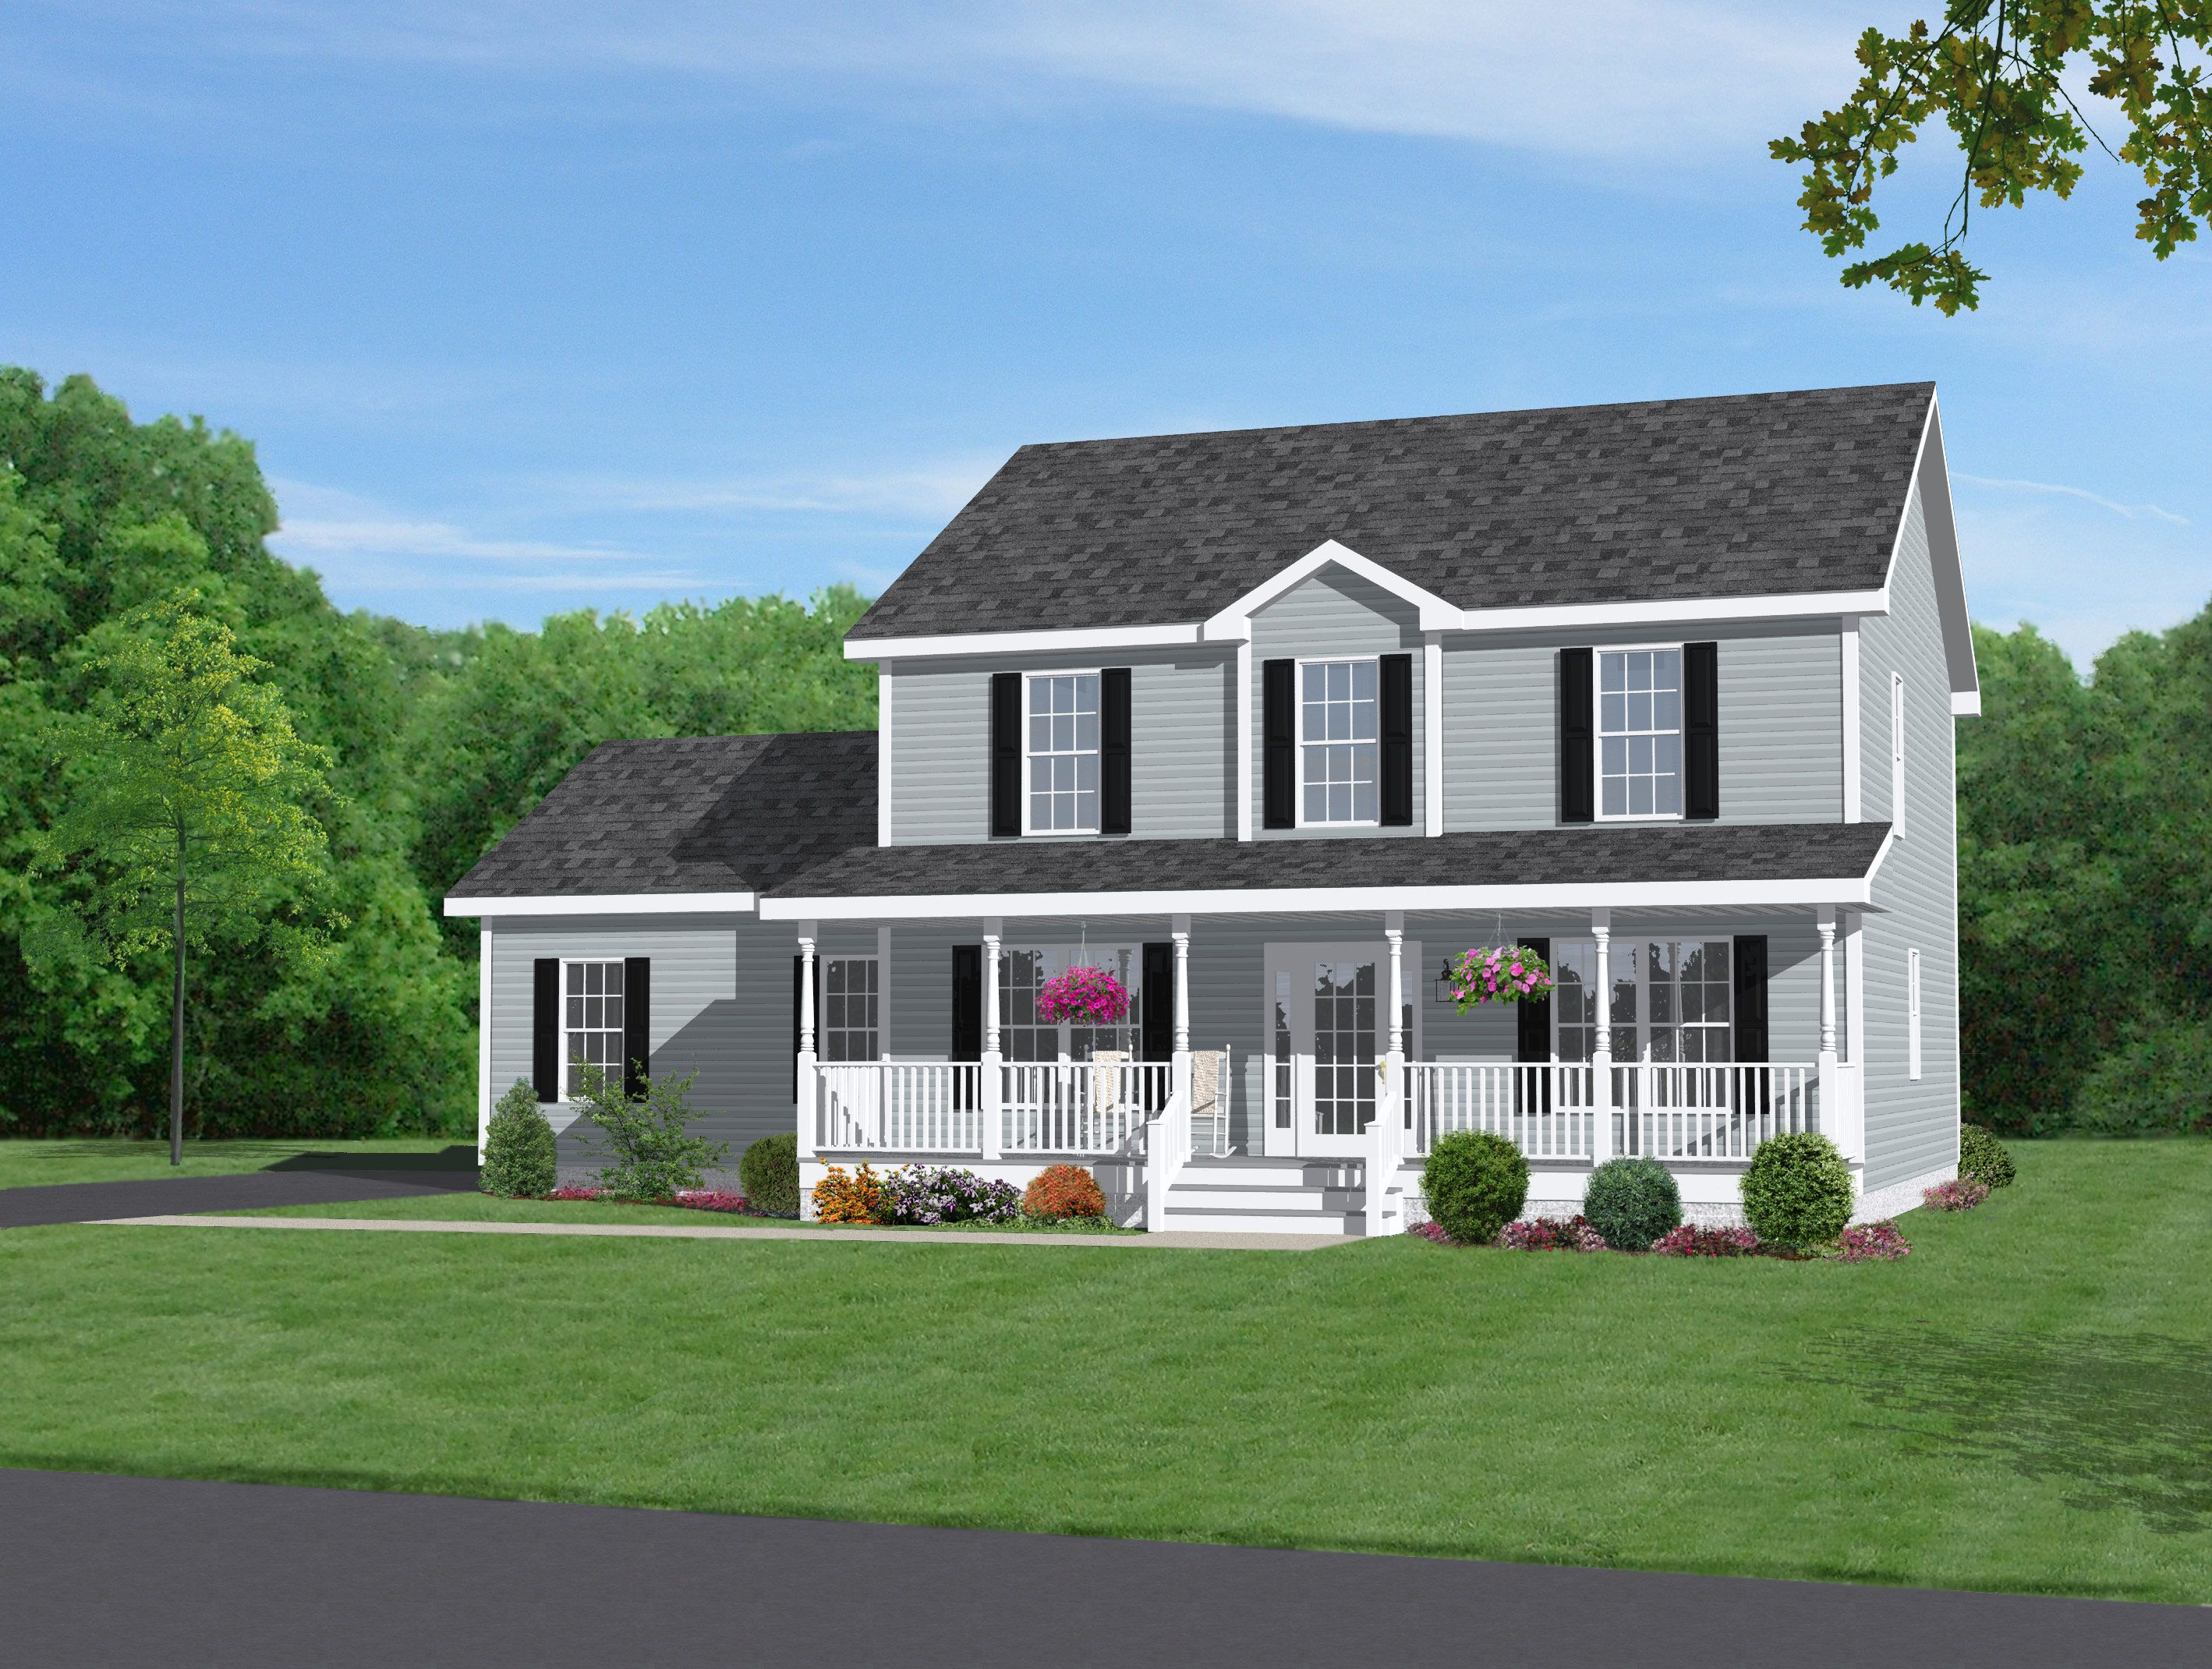 Best two story house plans 2016 for 2 story farmhouse plans